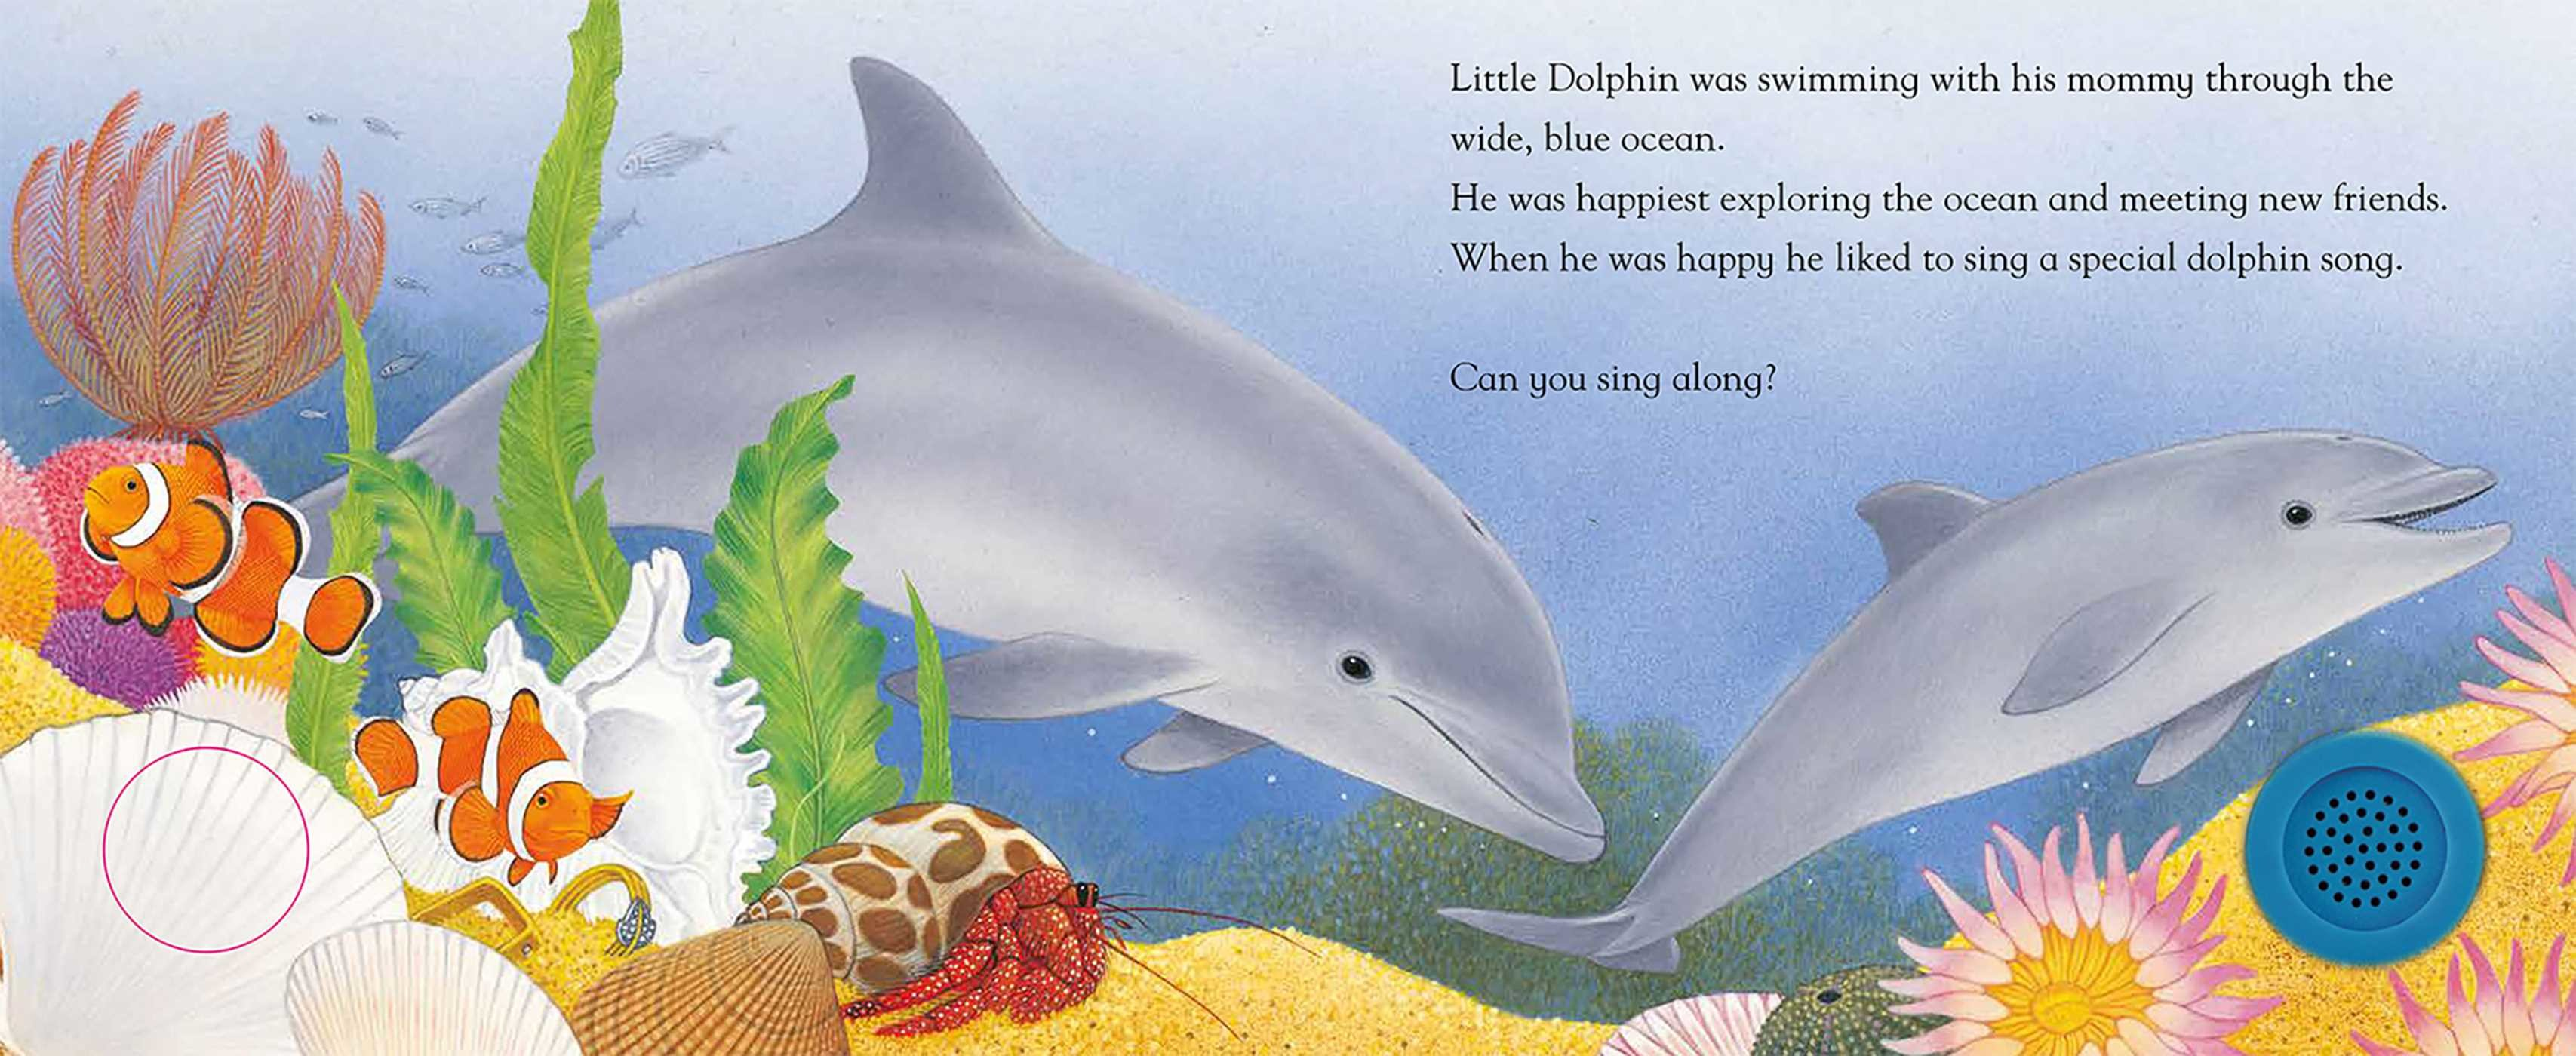 Little dolphin sings a song 9781626869417.in02